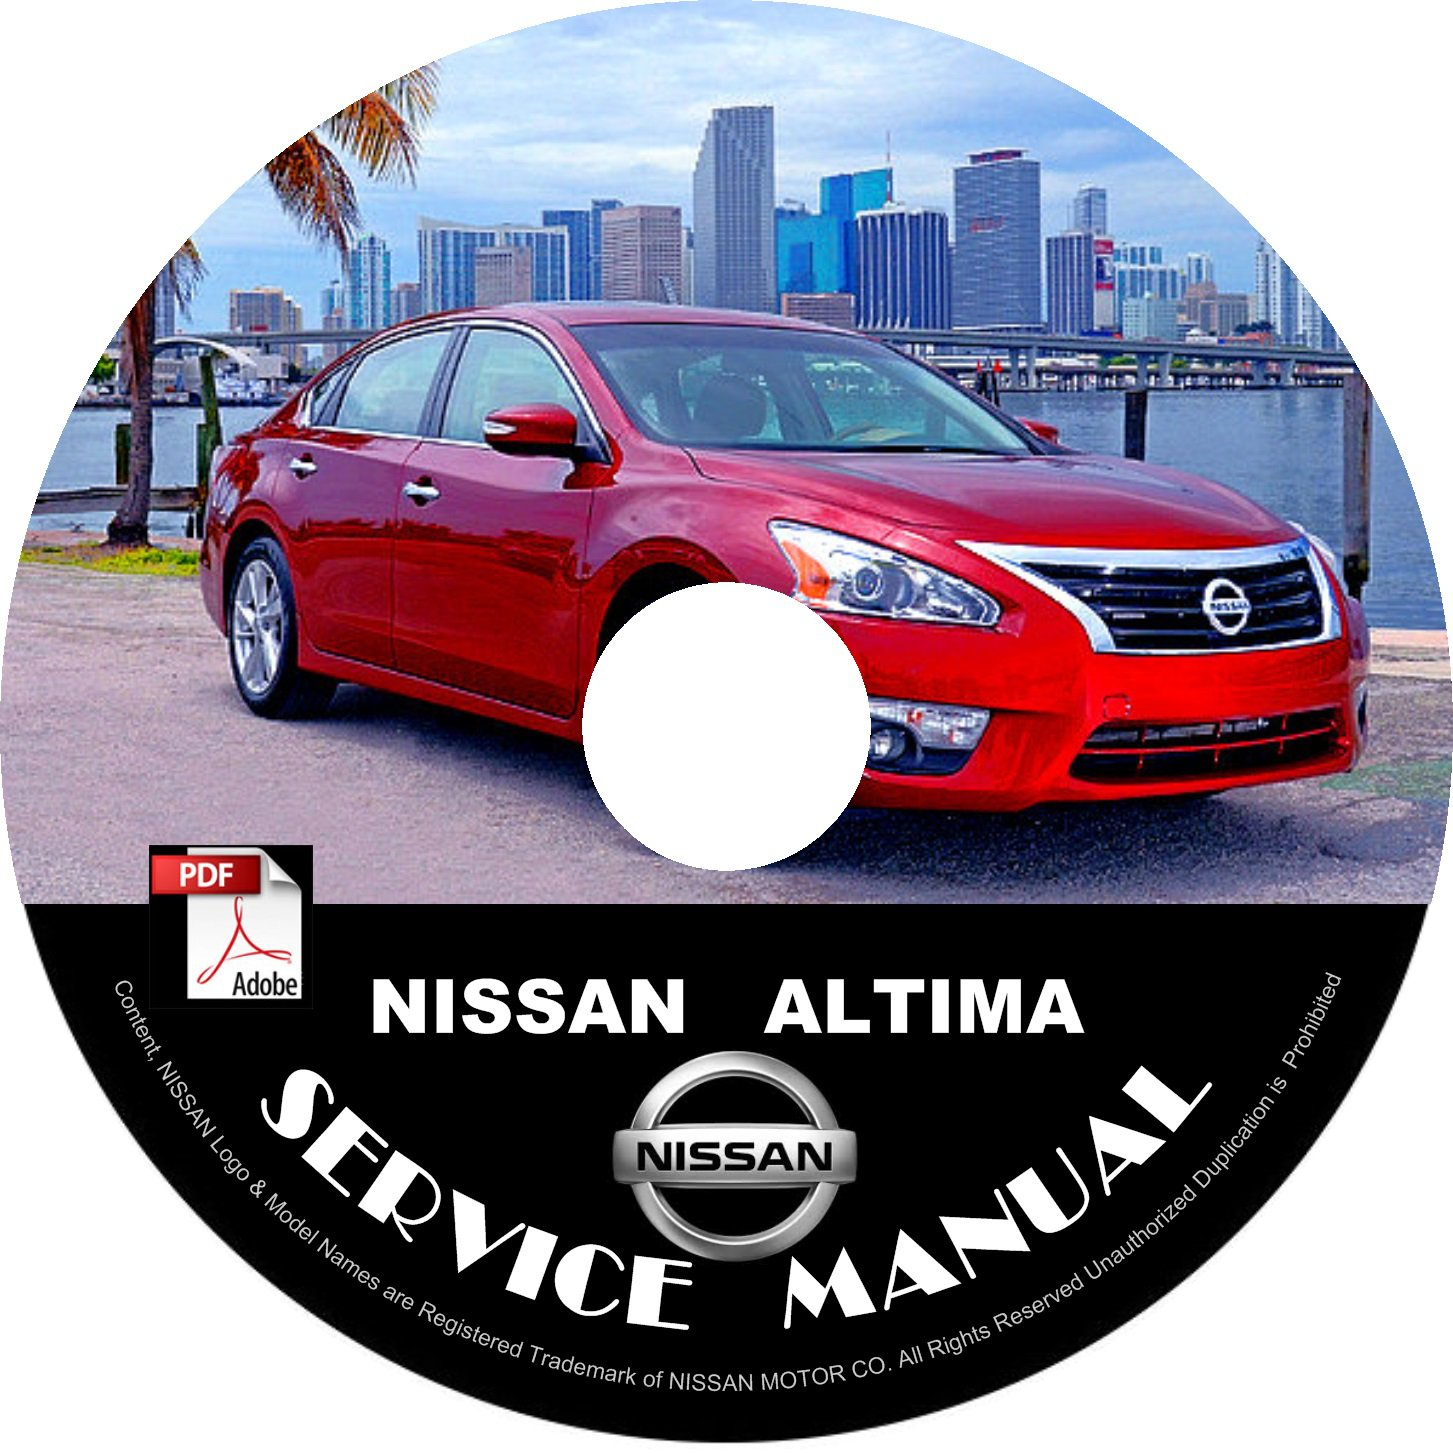 2015 nissan altima service repair shop manual on cd. Black Bedroom Furniture Sets. Home Design Ideas